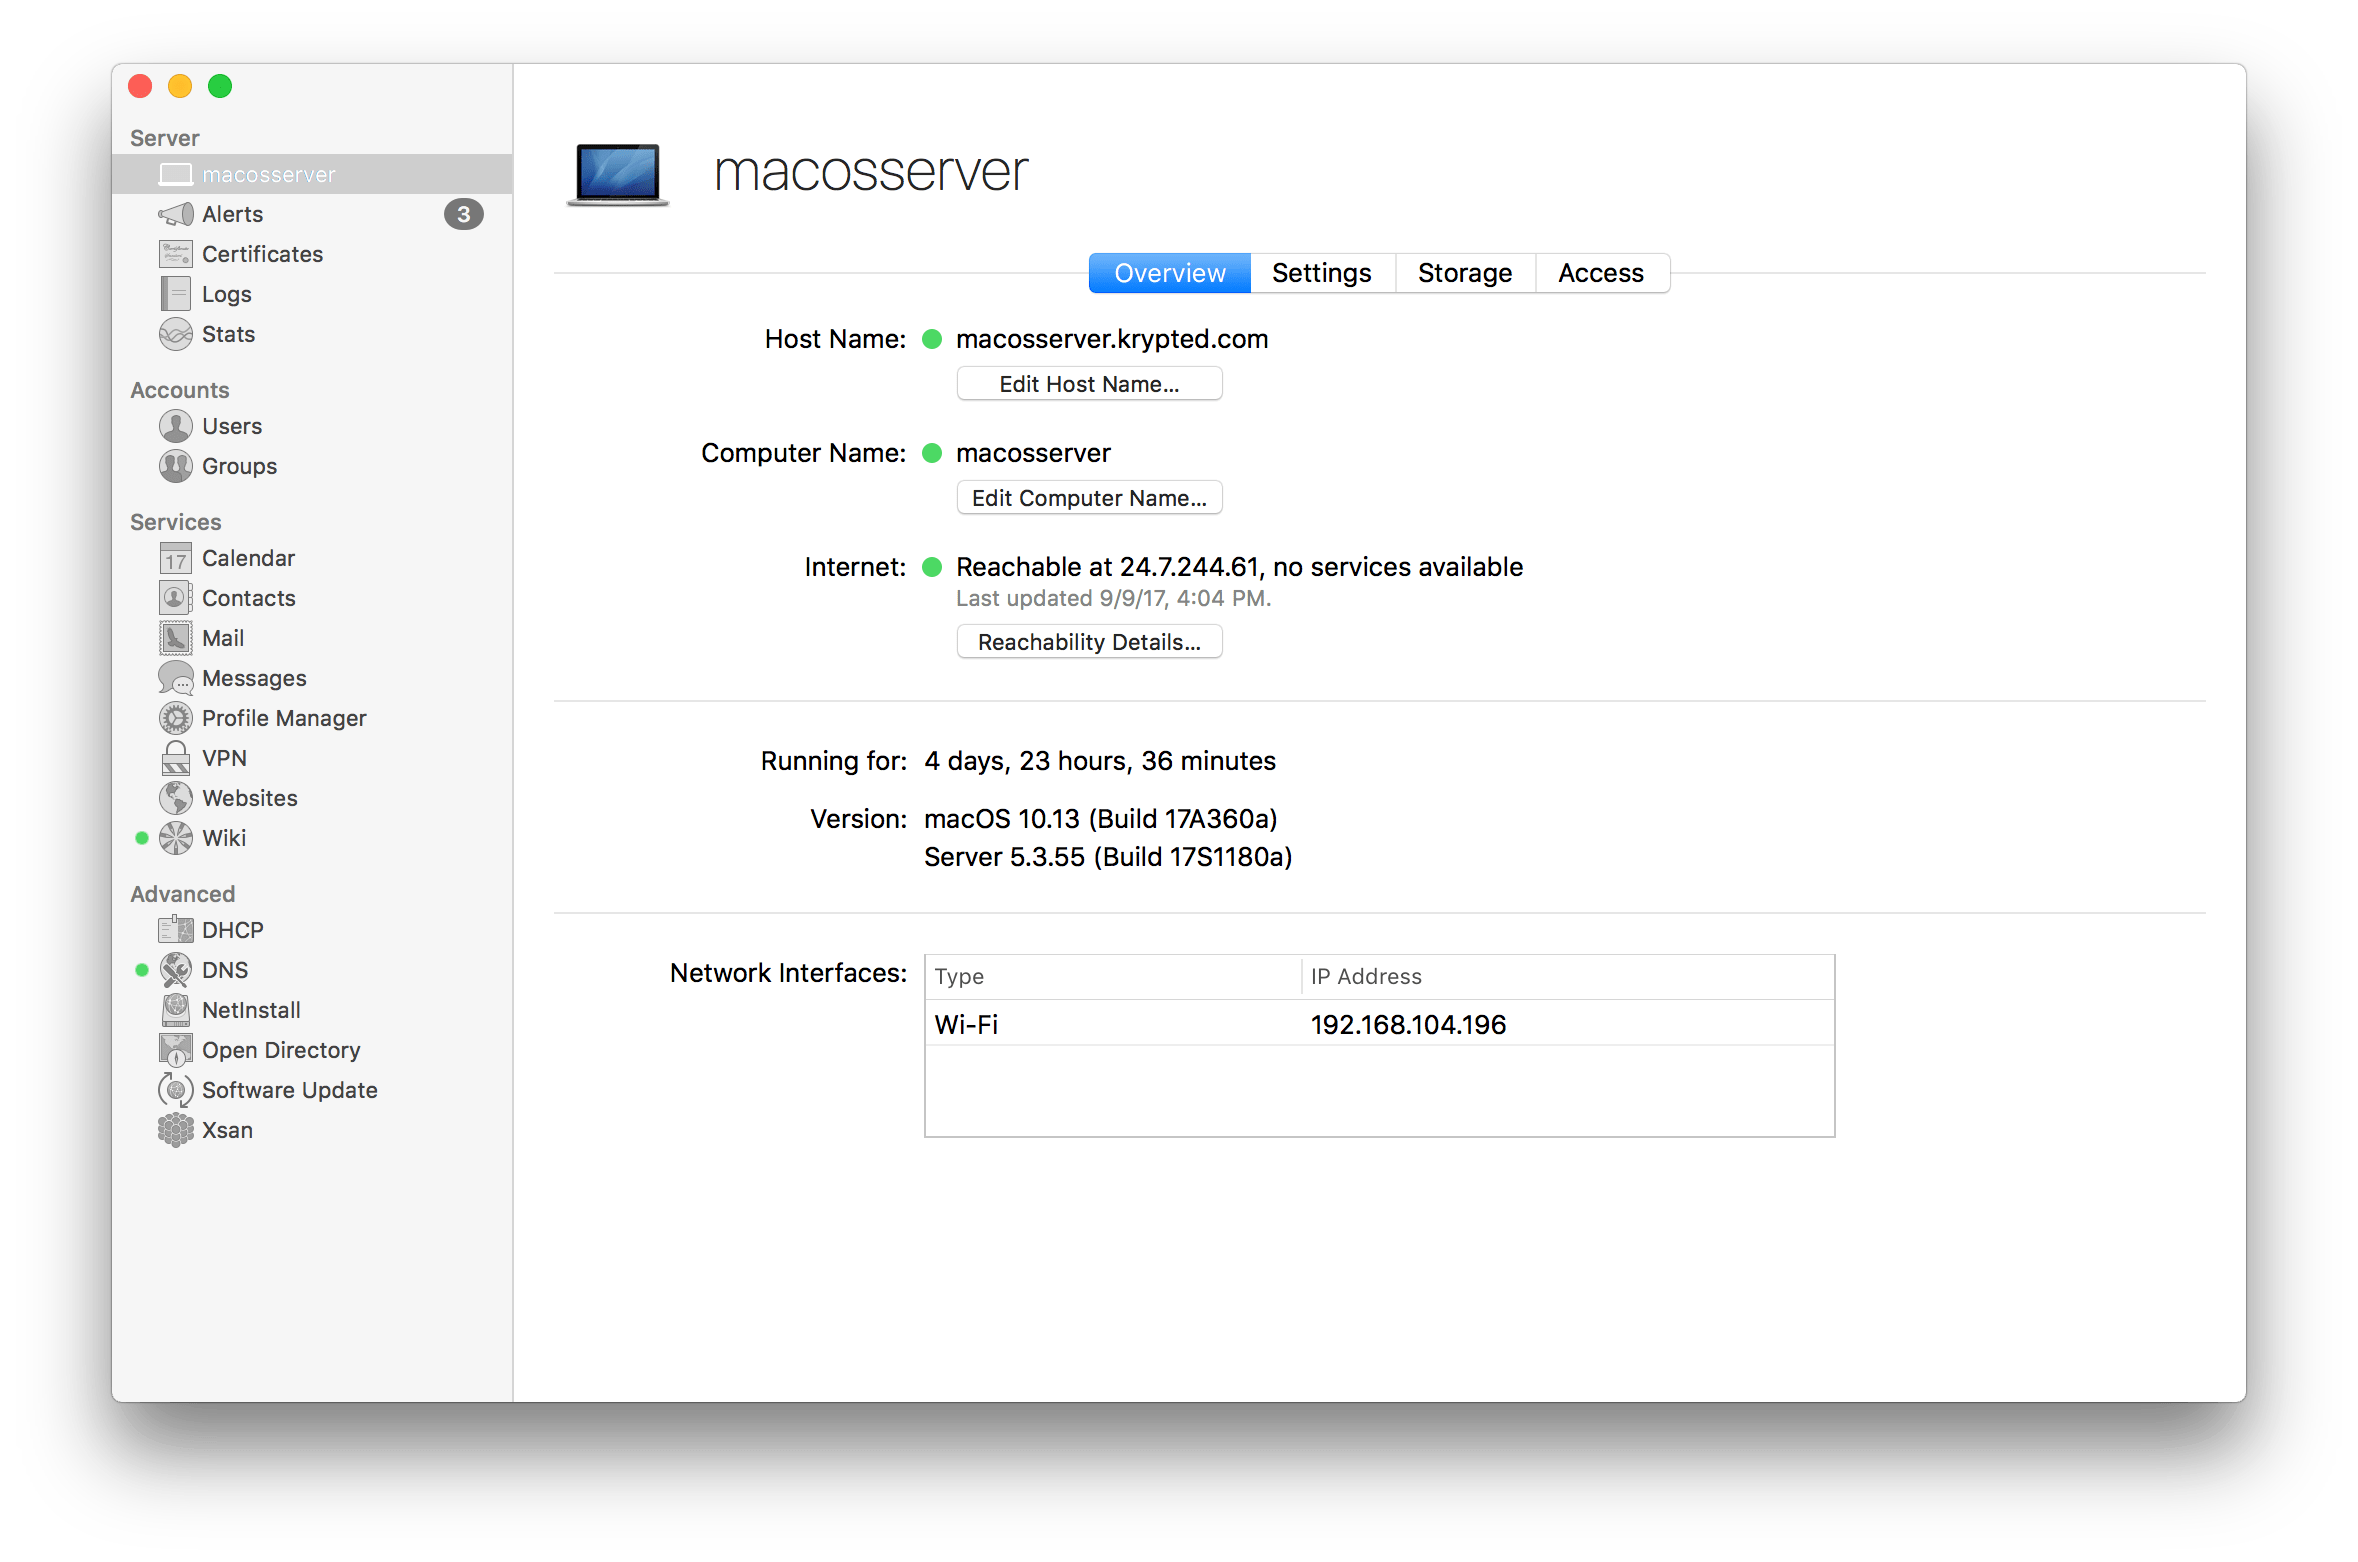 Manage Groups In macOS Server 5.4 Running On High Sierra